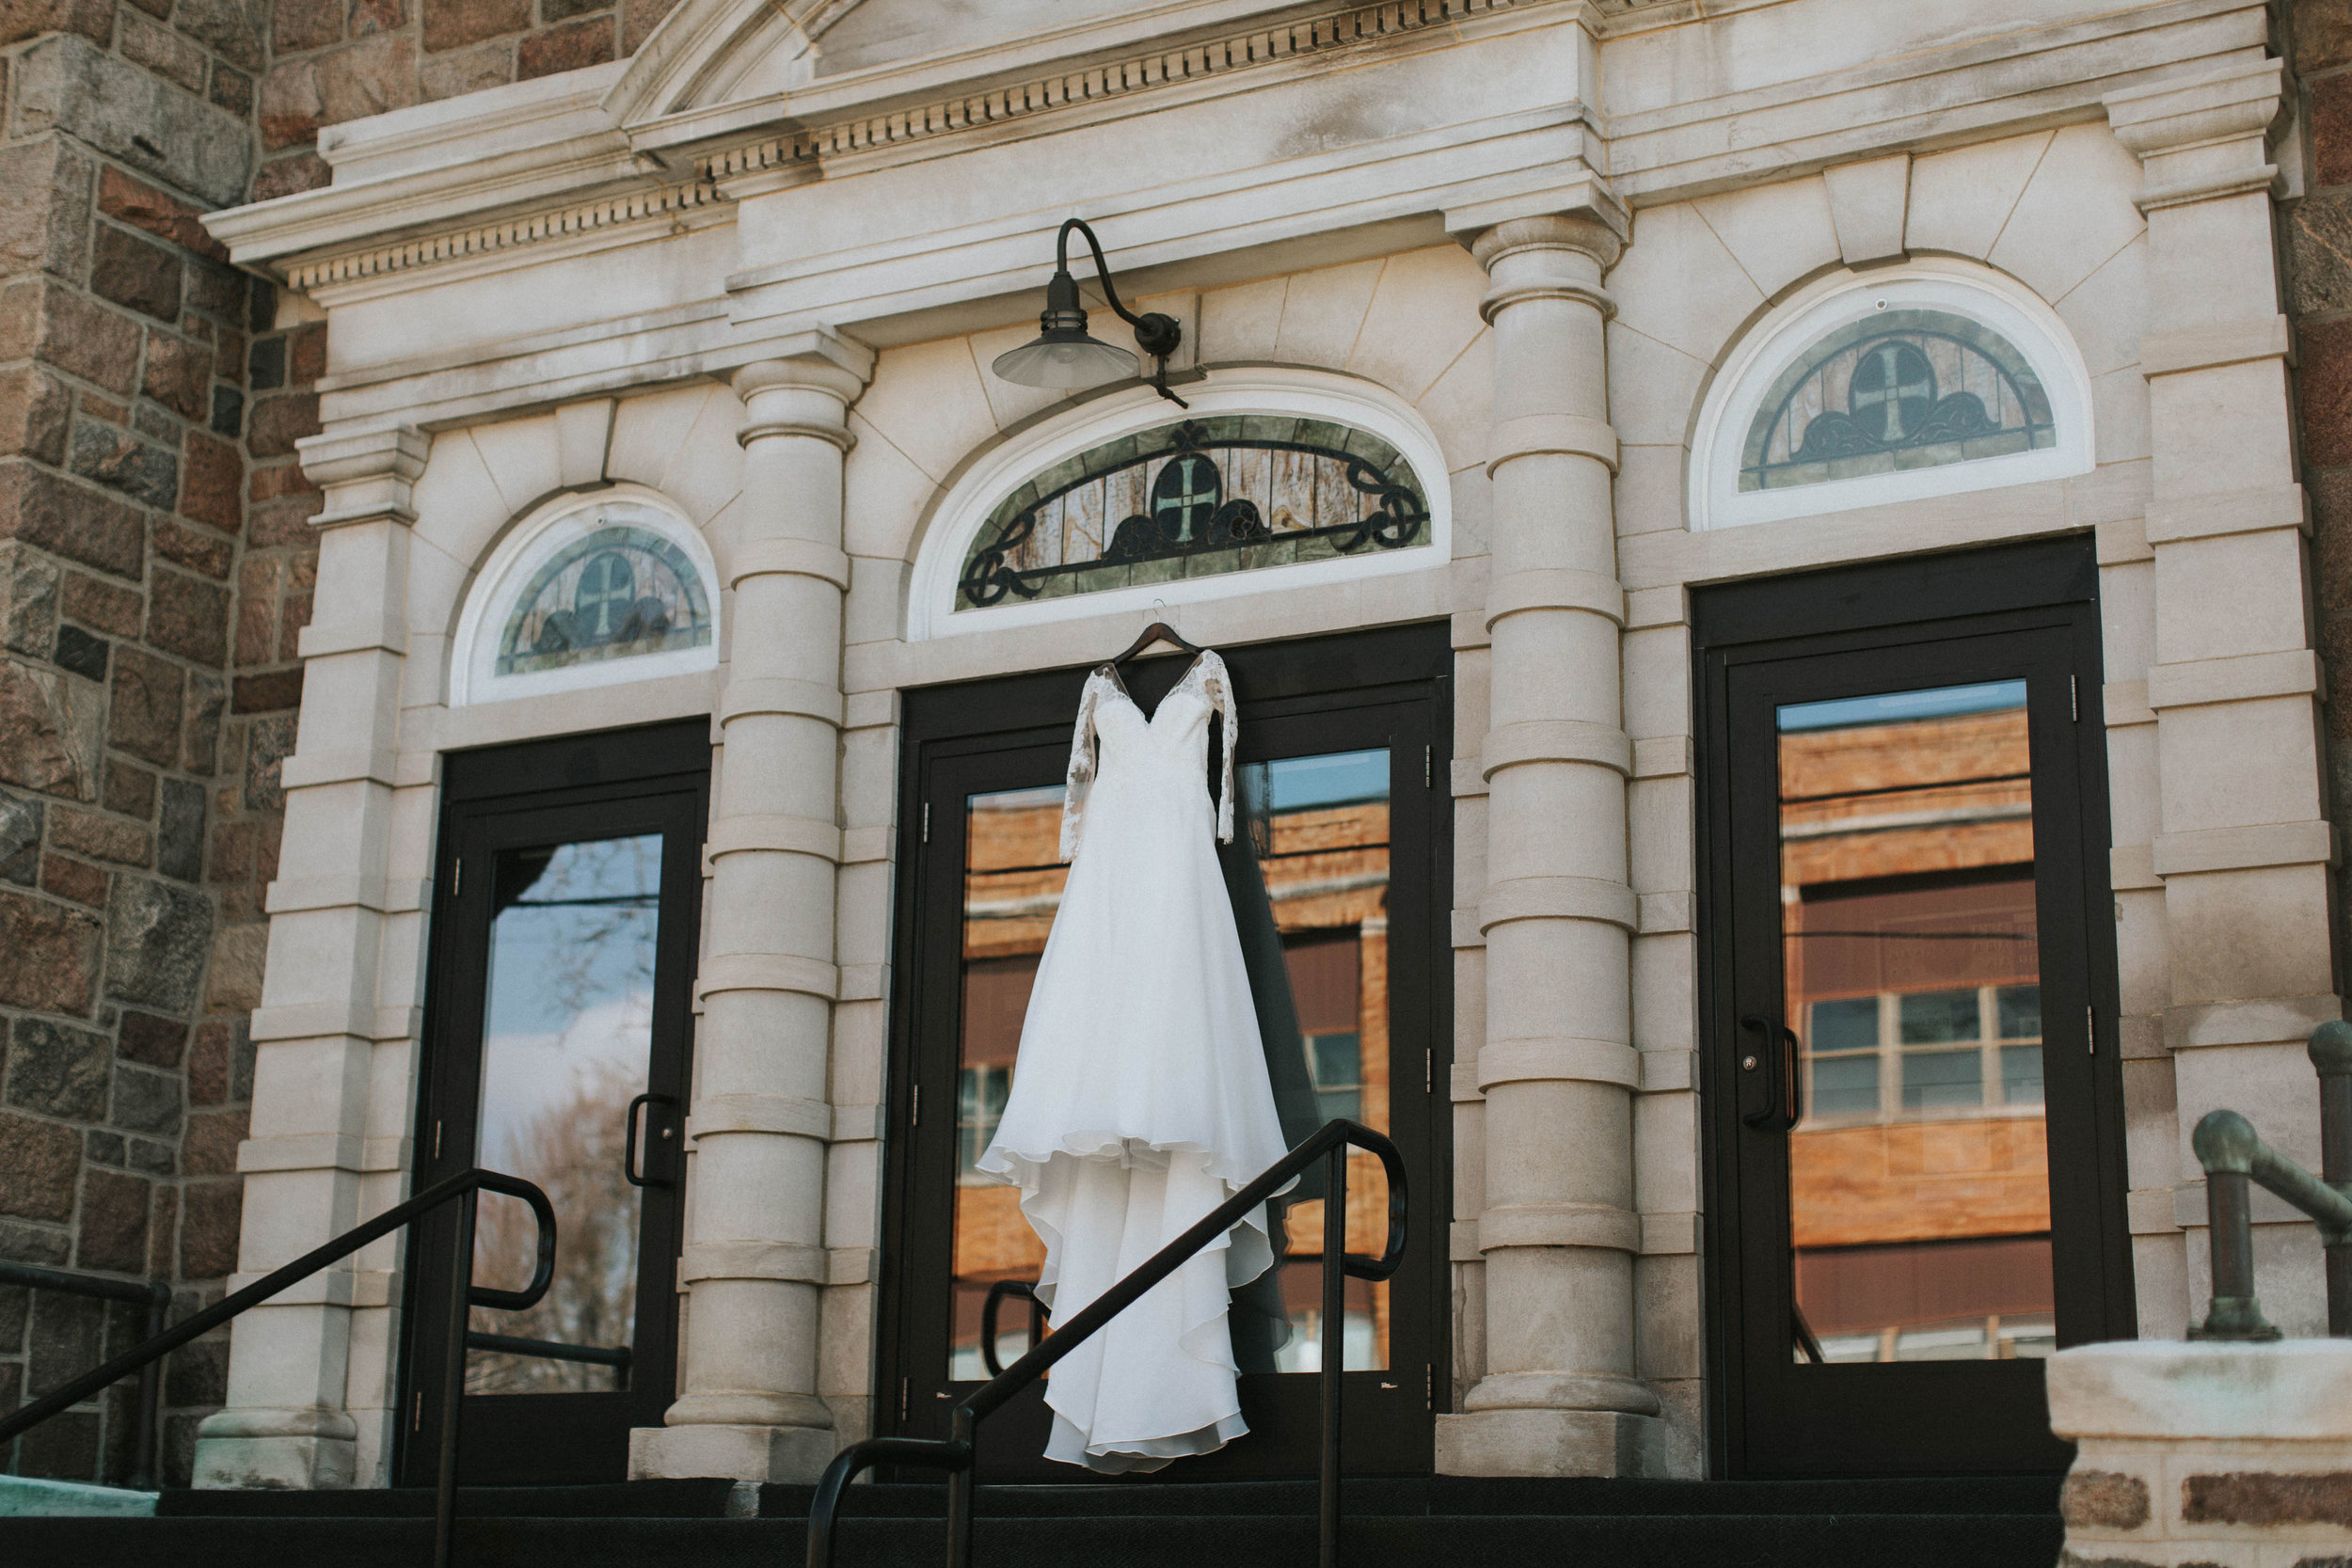 How gorgeous is her dress hanging in front of the church?